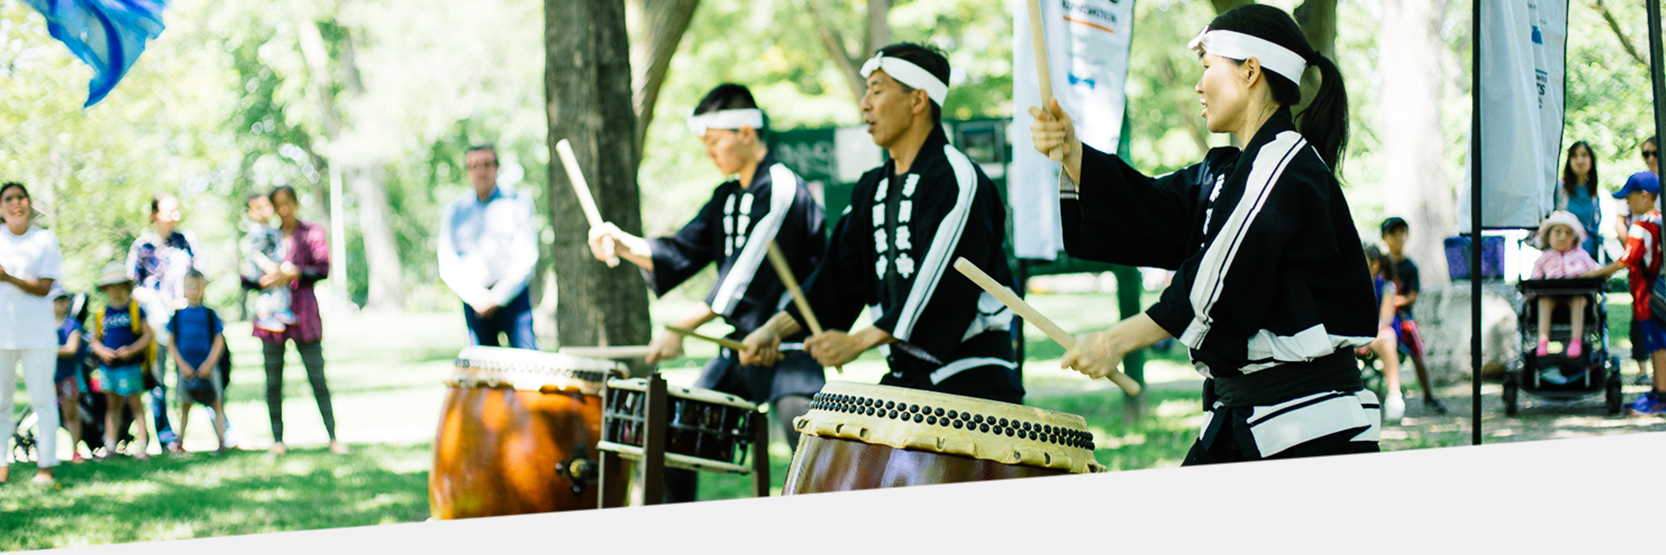 A photo of of three Japanese Taiko drummers in a park. Onlookers watch.